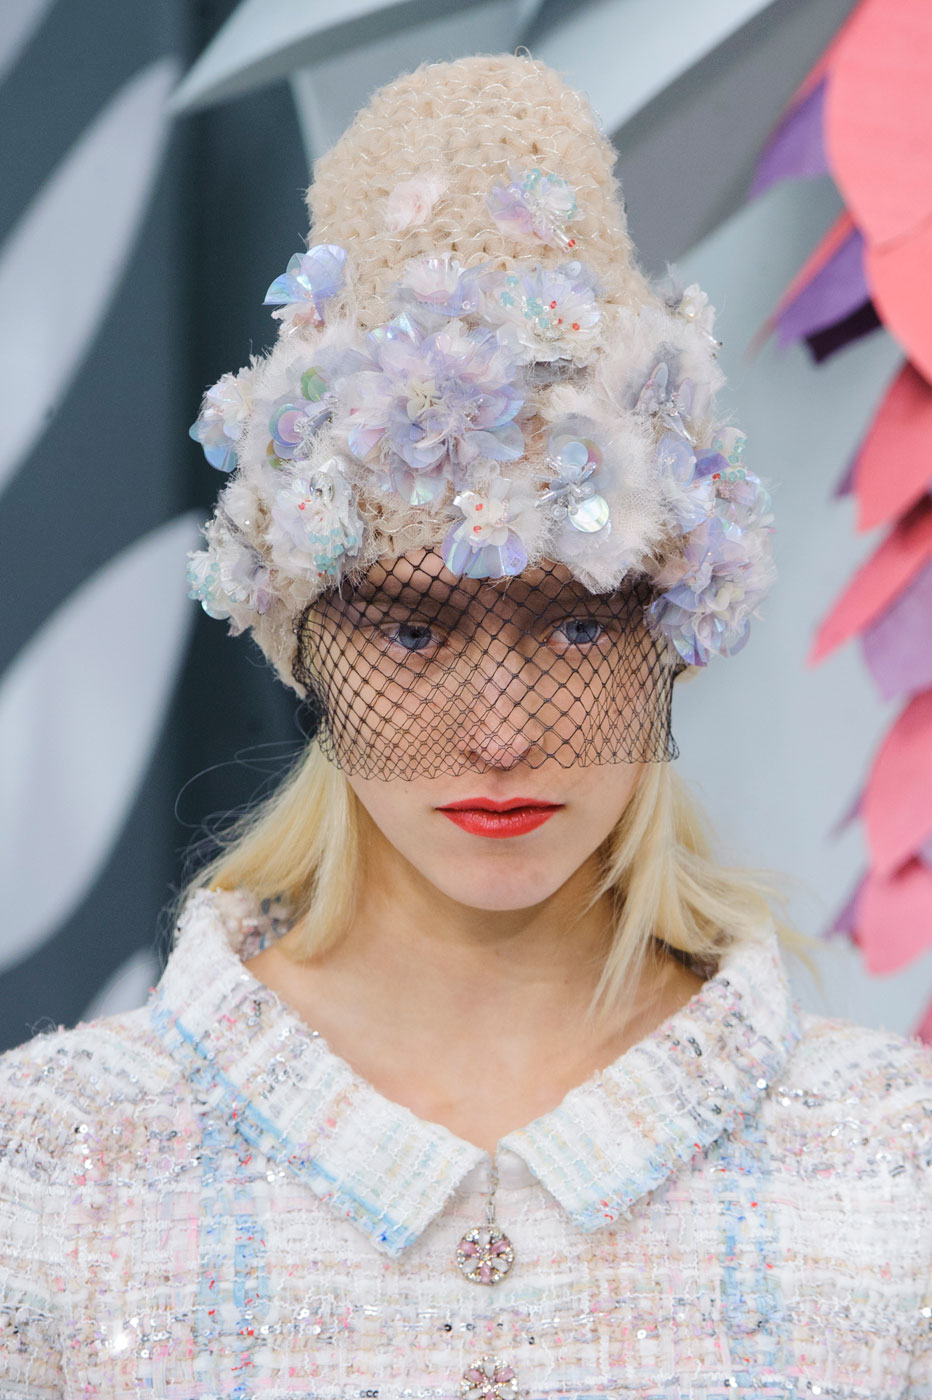 Chanel-fashion-runway-show-close-ups-haute-couture-paris-spring-summer-2015-the-impression-048